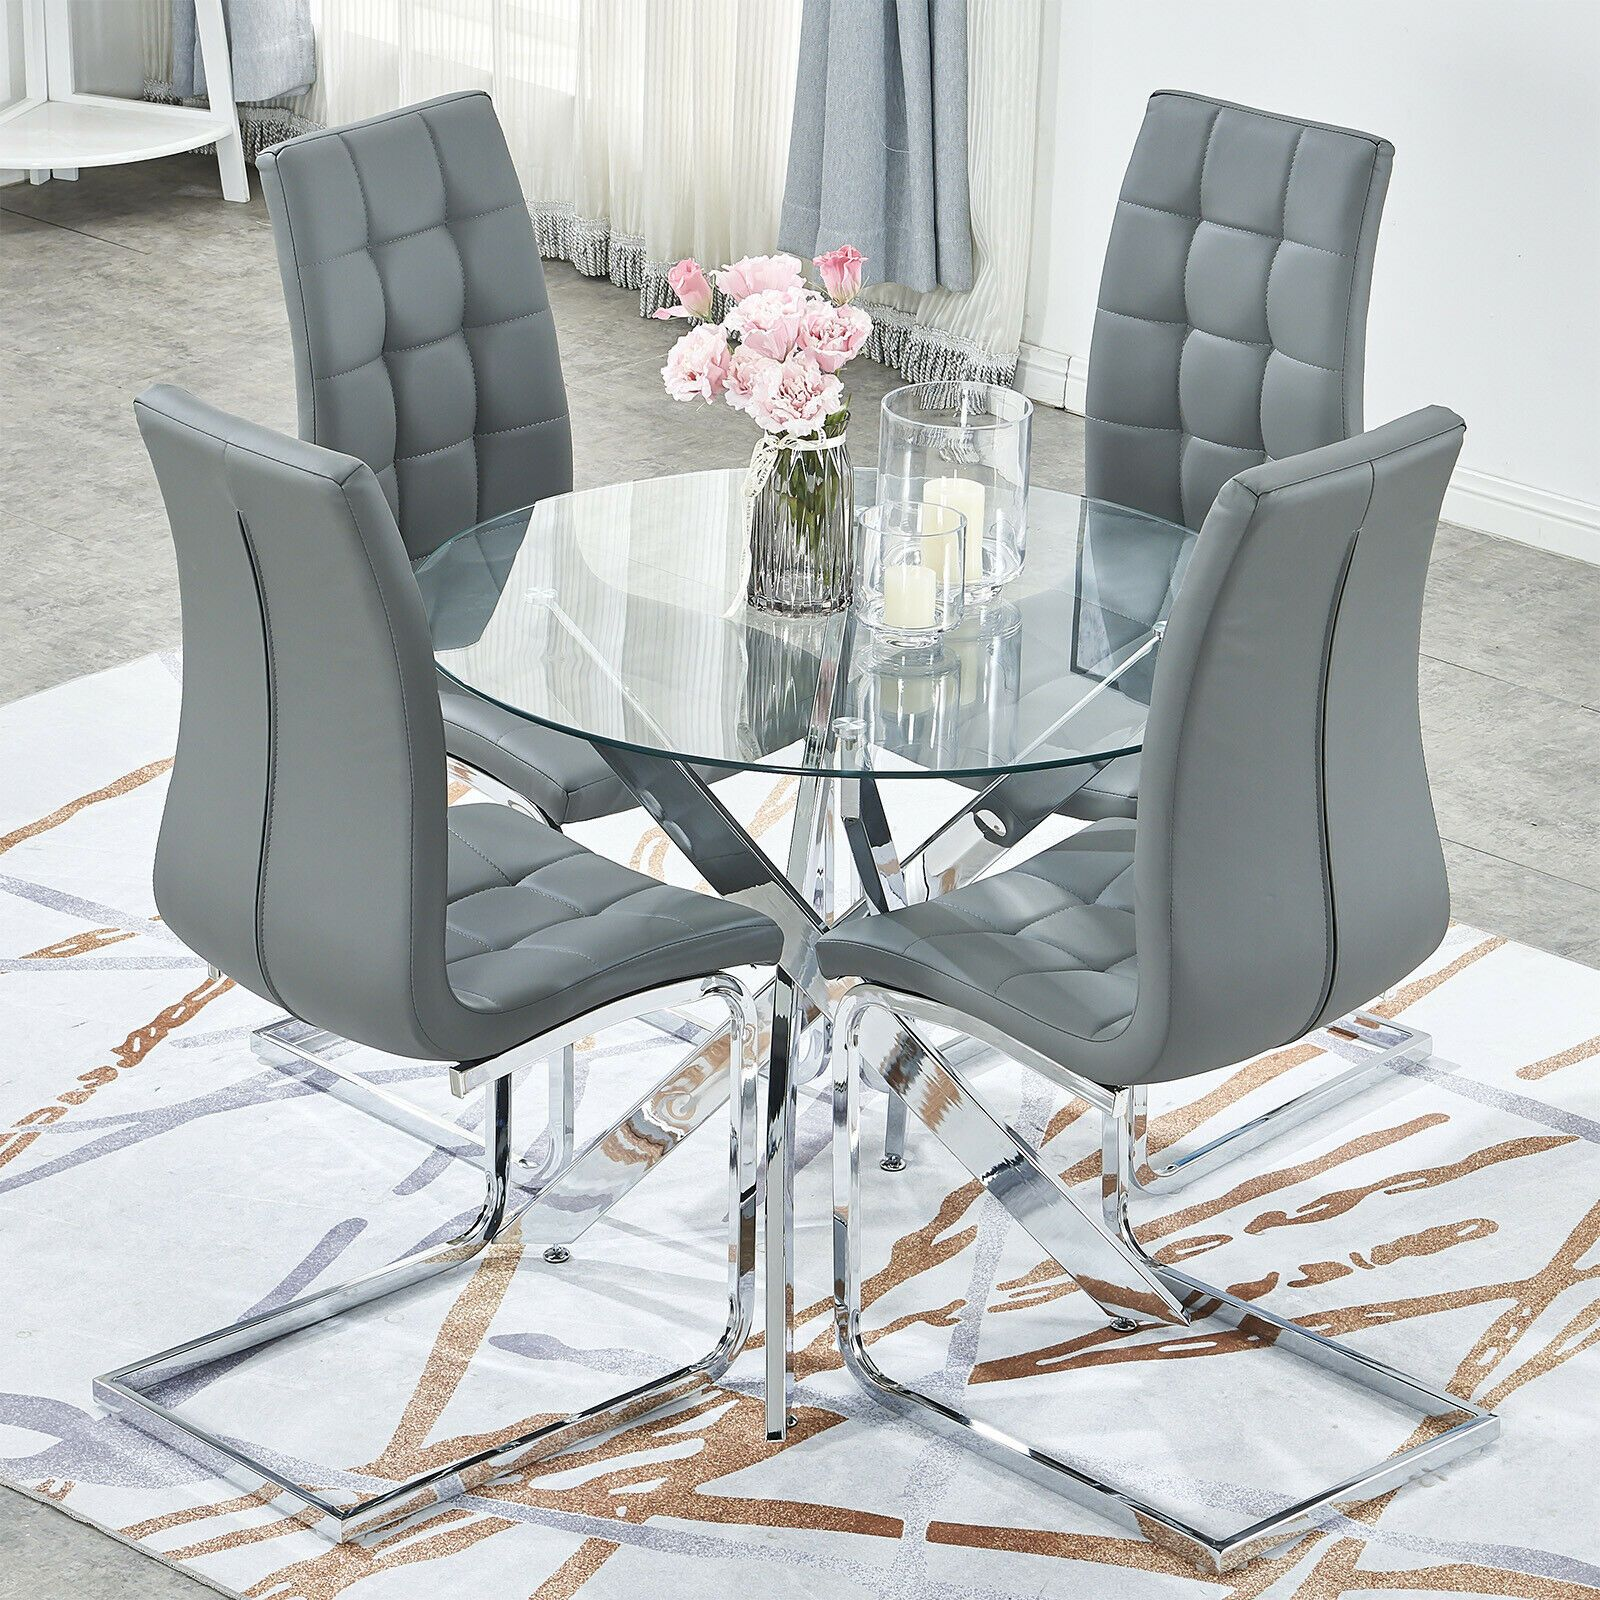 Round Kitchen Table And Chairs Set 4 Glass Round Dining Table Round Table And Chairs Round Kitchen Table